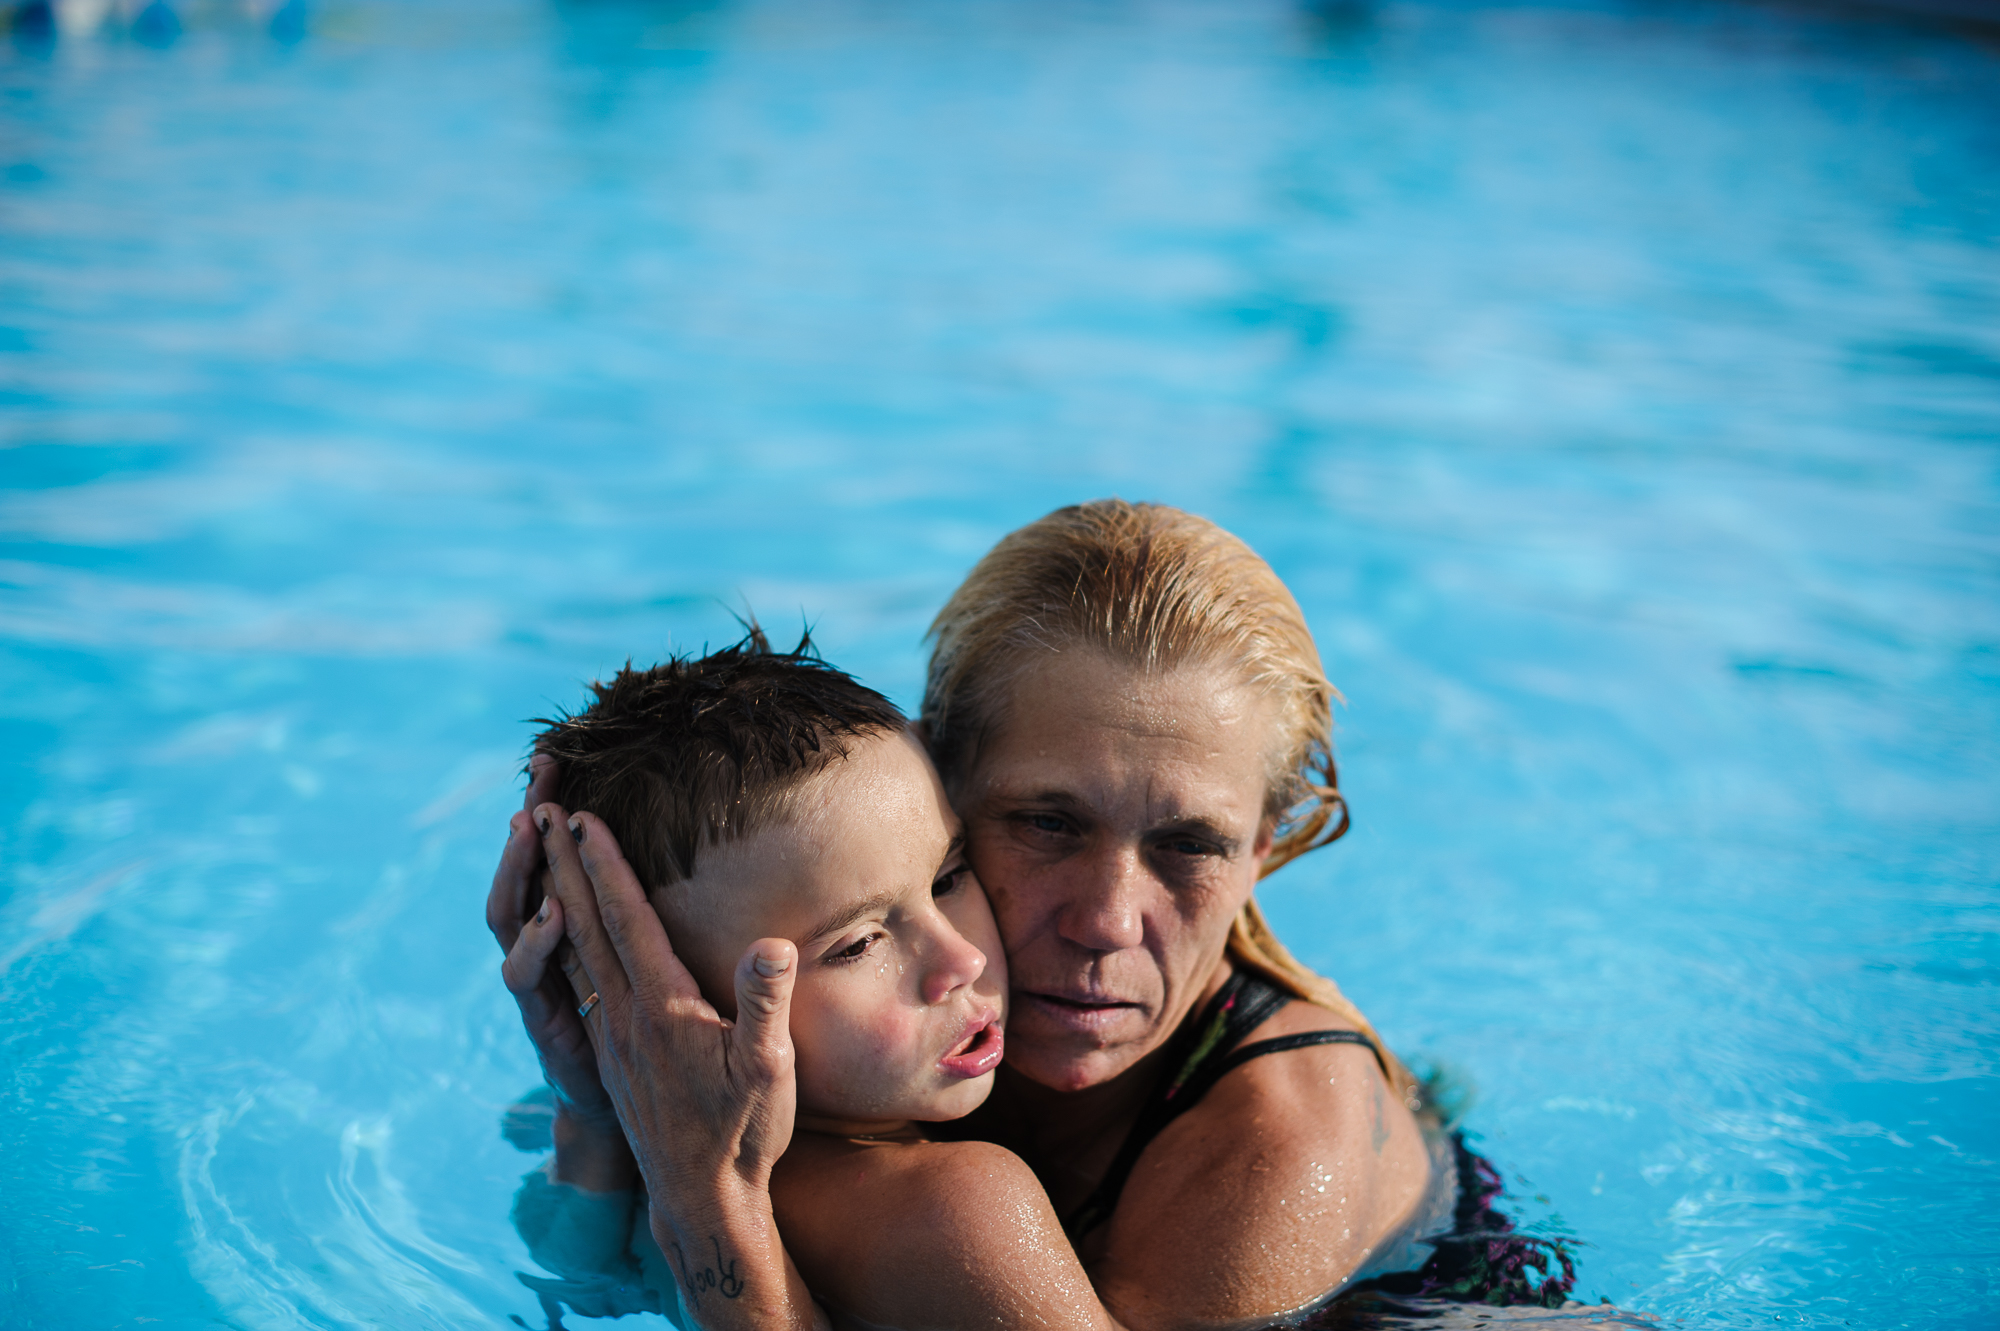 Eve holds her youngest son, Michael, in the pool at the motel, 2013.